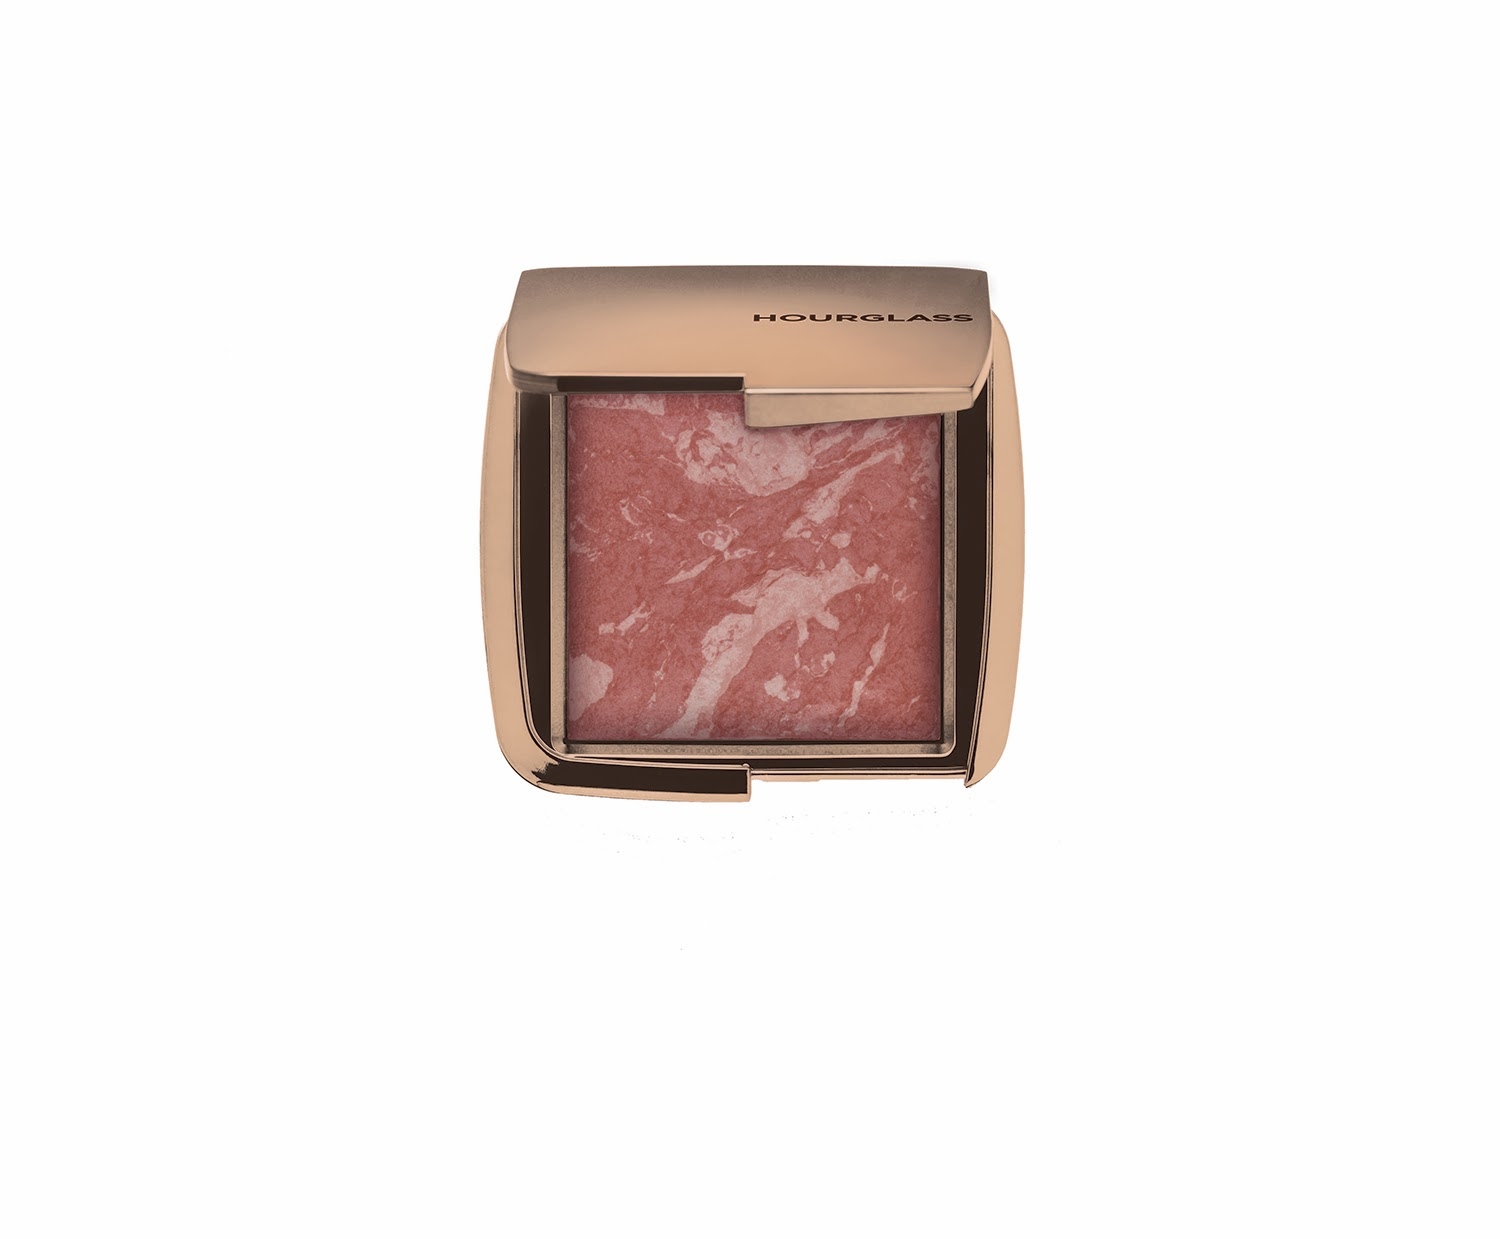 nutribaume by terry swatch